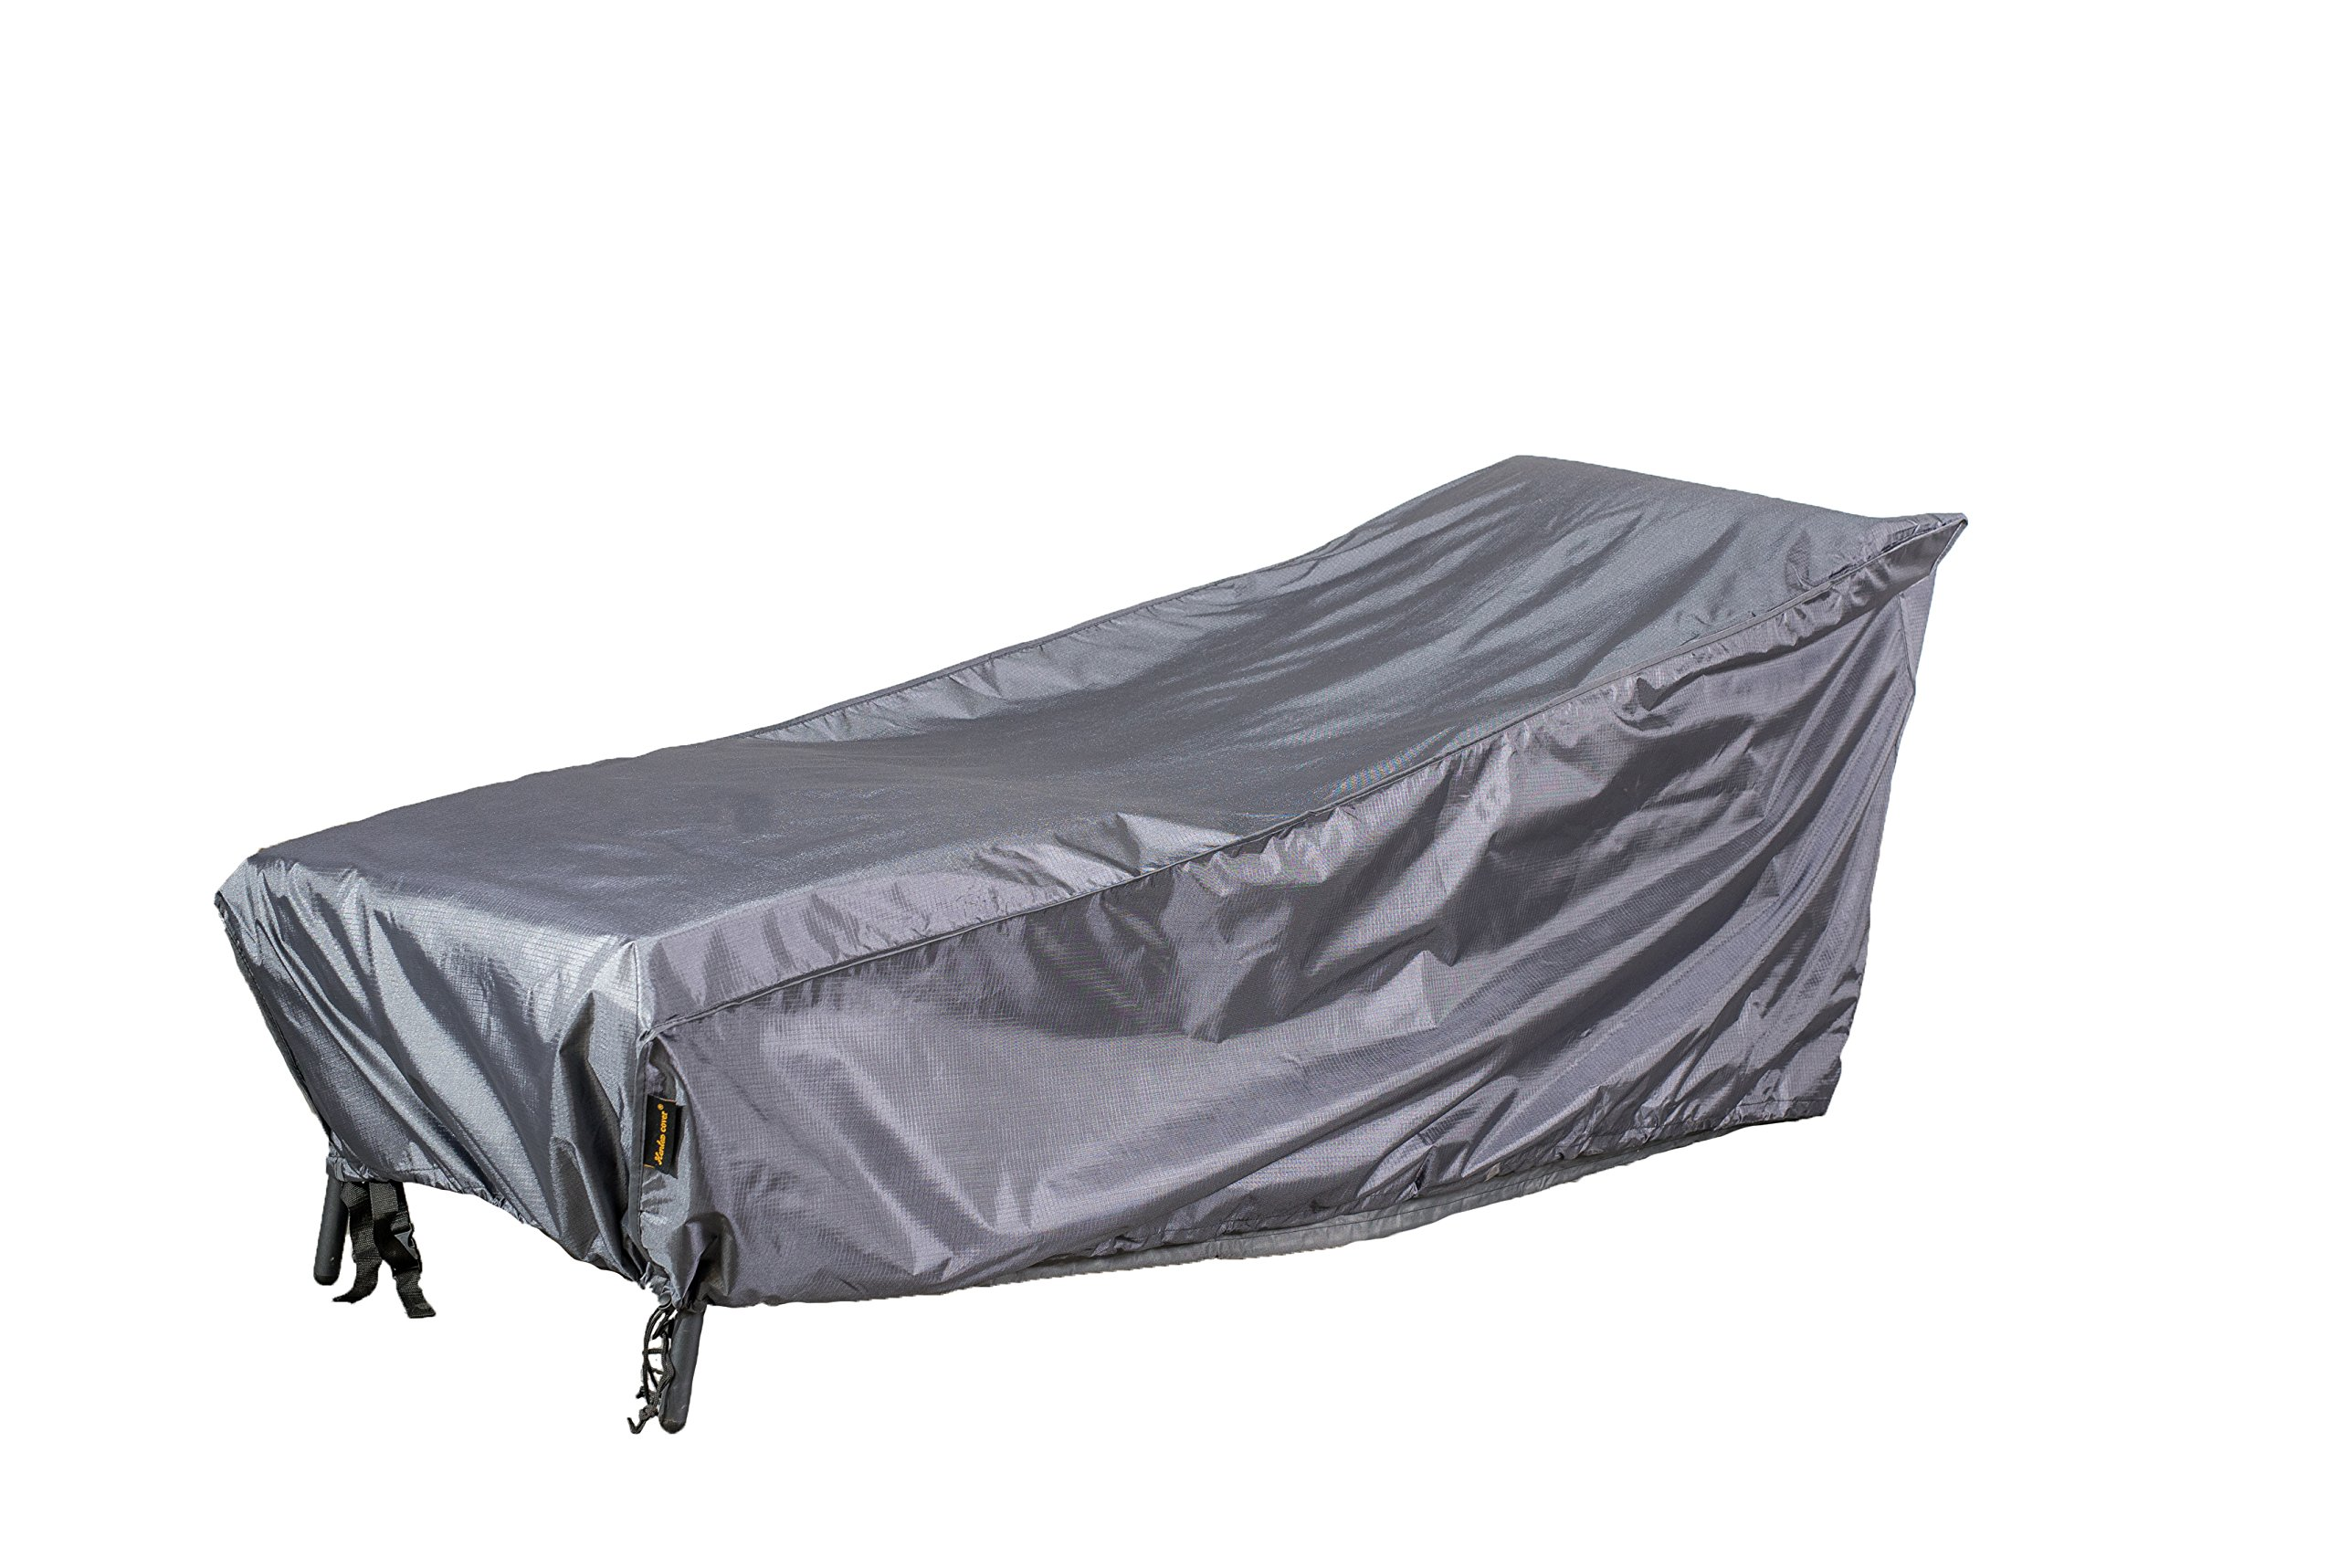 Hentex Cover Outdoor Garden Chaise Lounge Chair Cover with Rip Stop, Water Resistant, Breathable, 2 Layer with TPU fabric (86''×34''×30'')